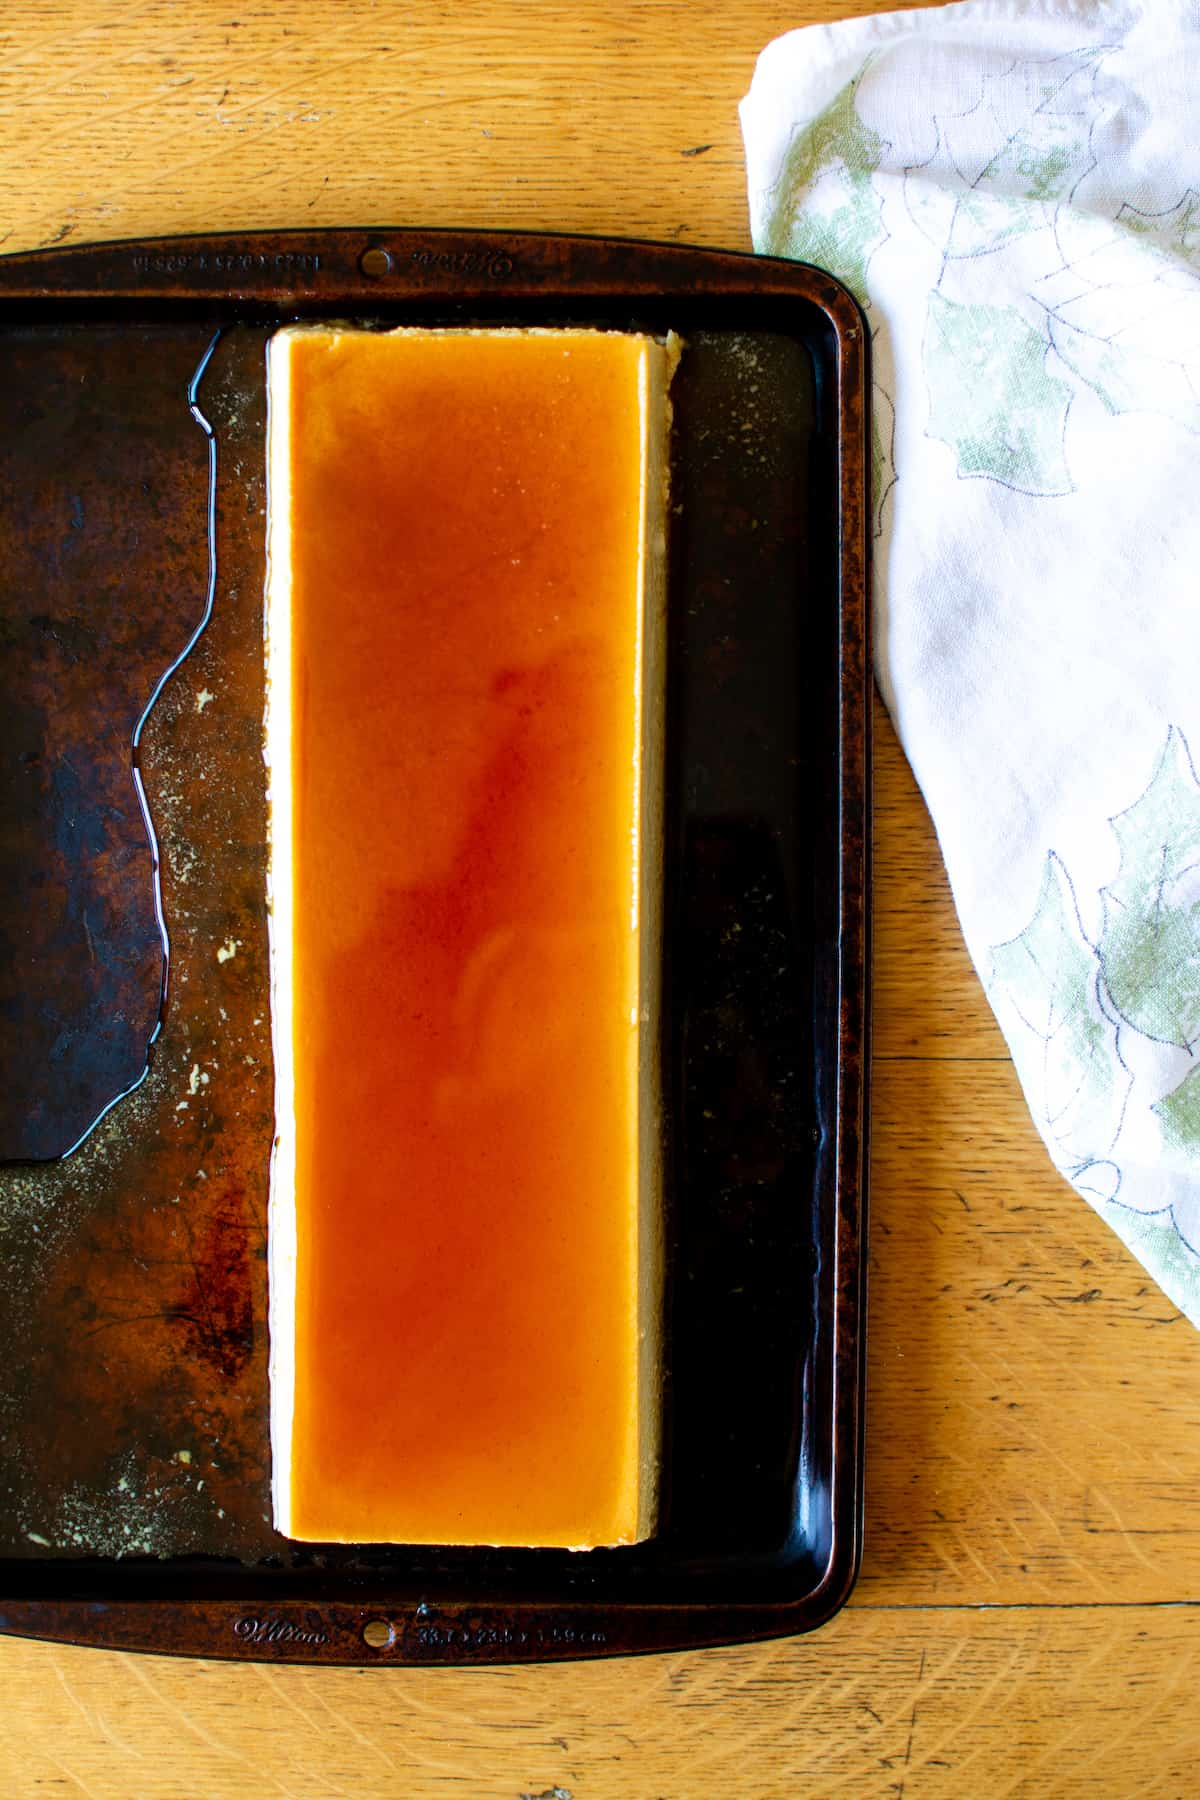 A rectangular flan on a baking sheet with a white towel near by sitting on a wood table.